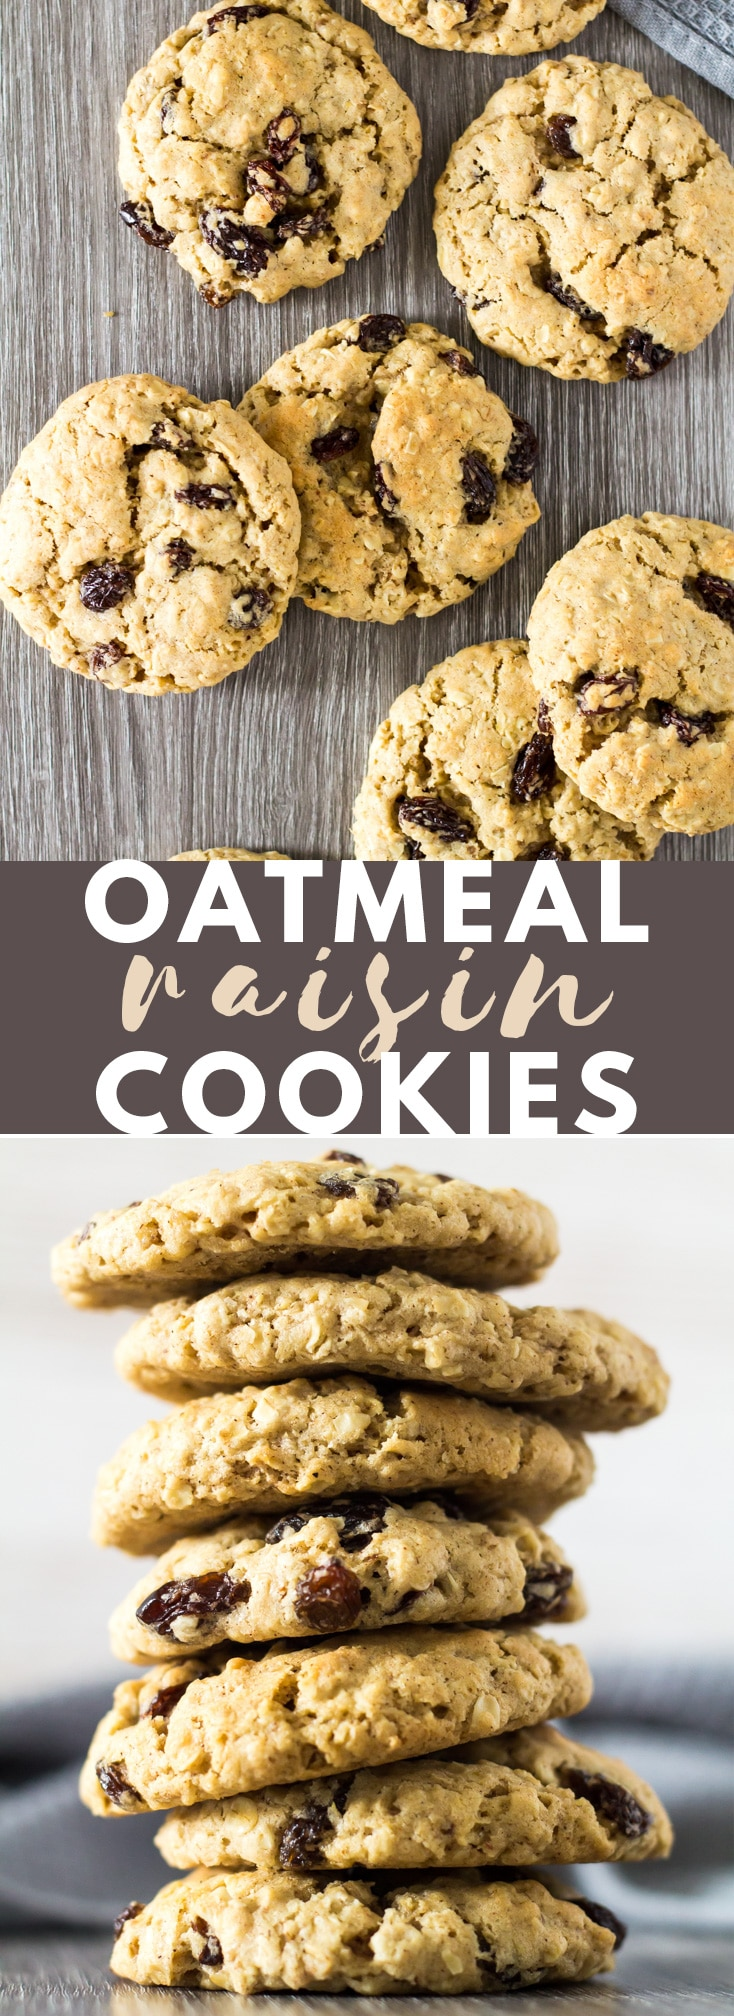 Oatmeal Raisin Cookies - Deliciously thick and chewy oatmeal cookies that are perfectly spiced with cinnamon and nutmeg, and loaded with raisins! #oatmeal #cinnamon #raisin #cookies #cookierecipes